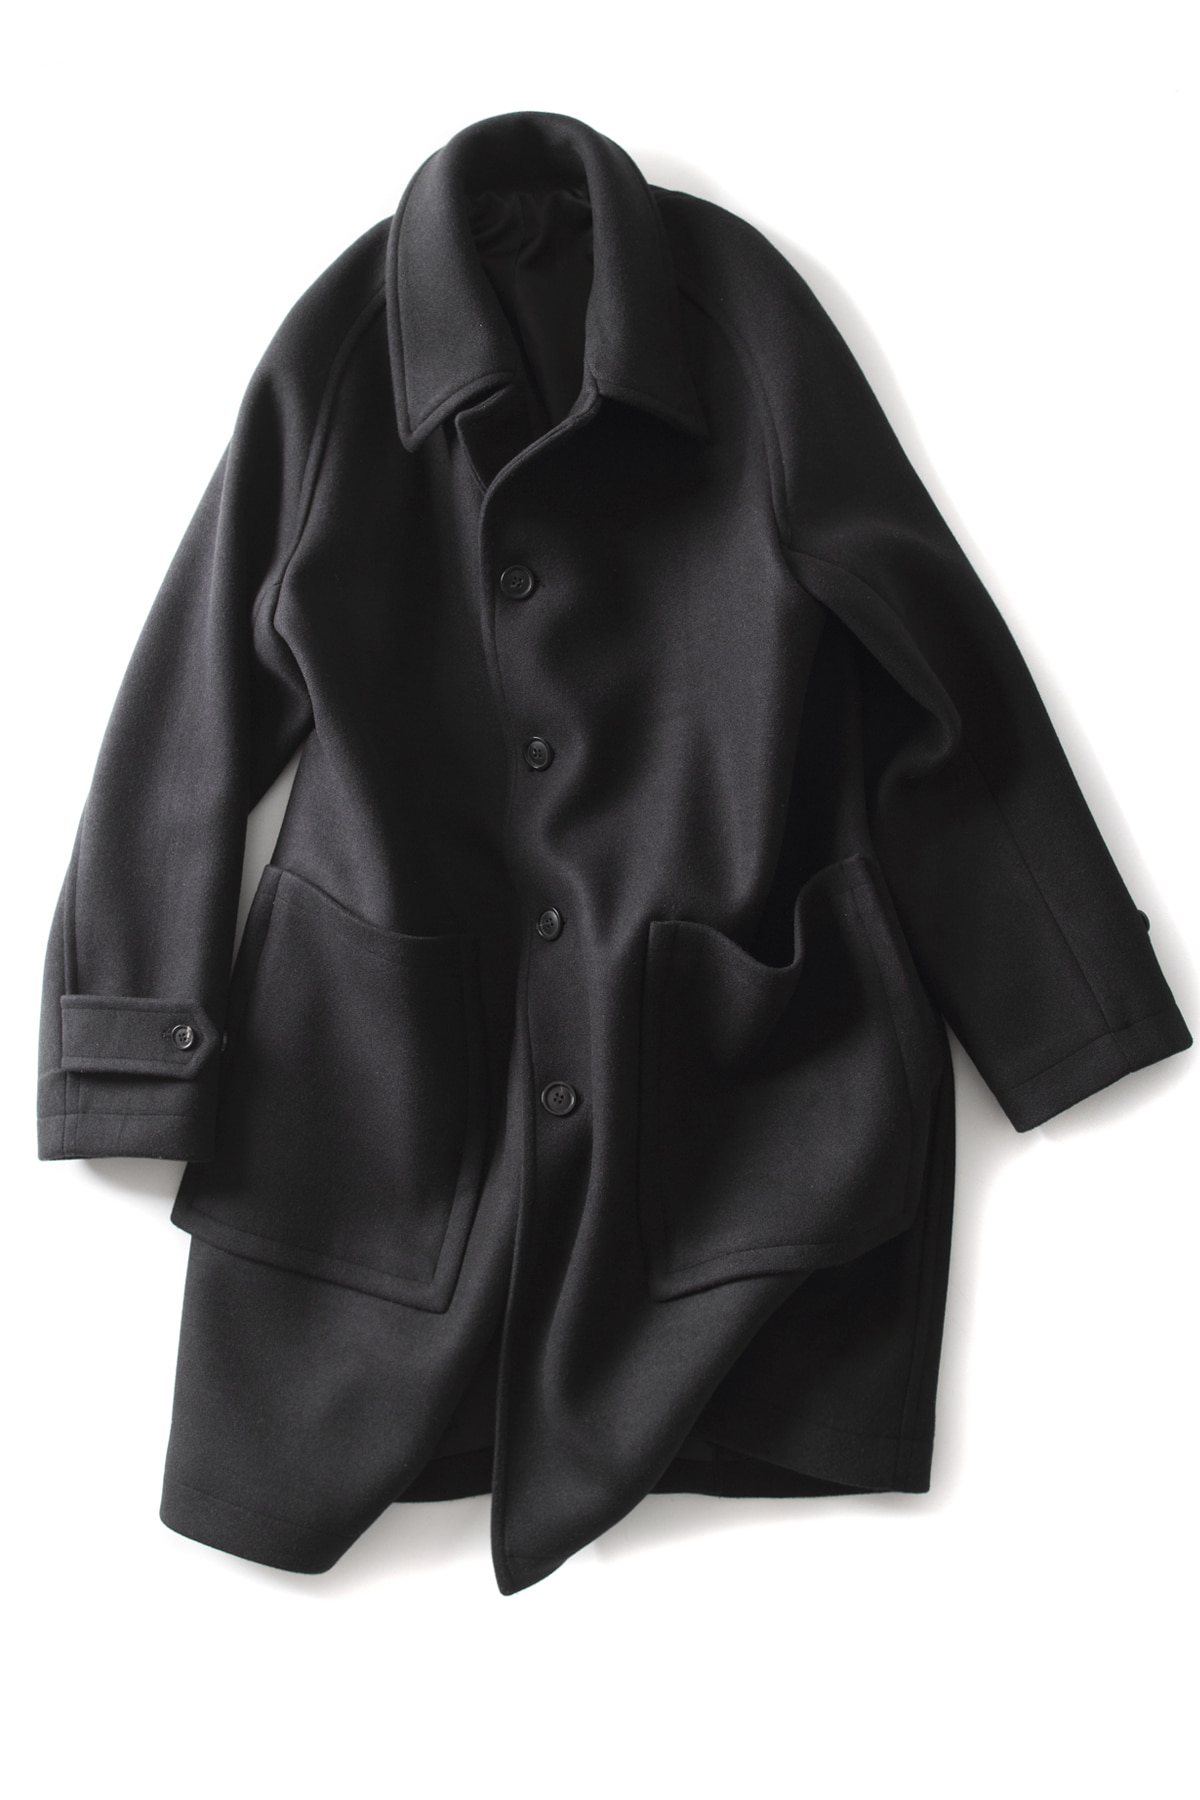 BIRTHDAYSUIT : Leck Coat (Black)